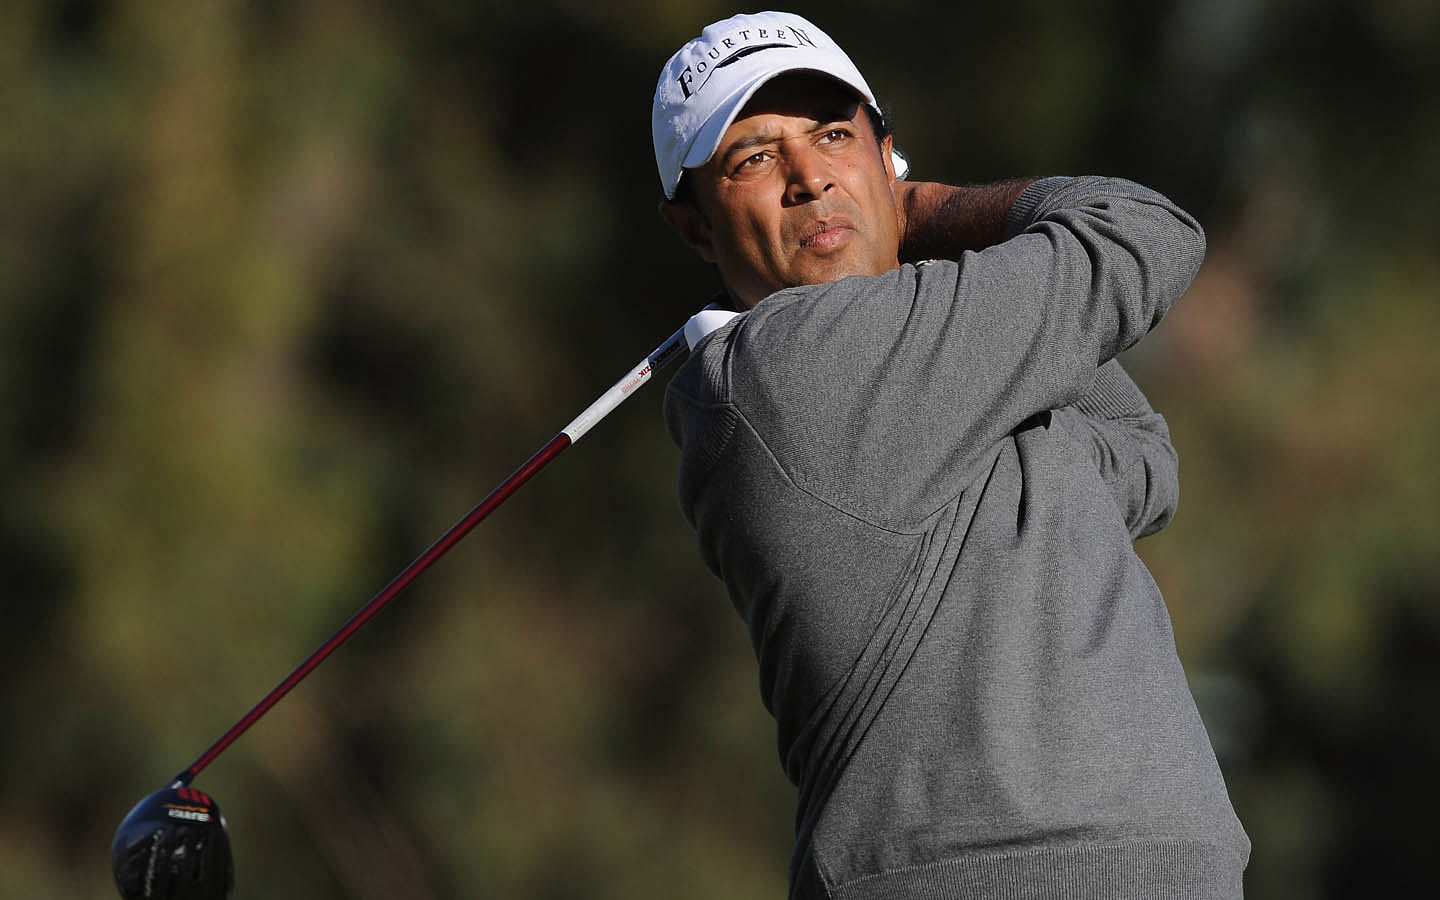 Arjun Atwal to participate in Indonesian Masters